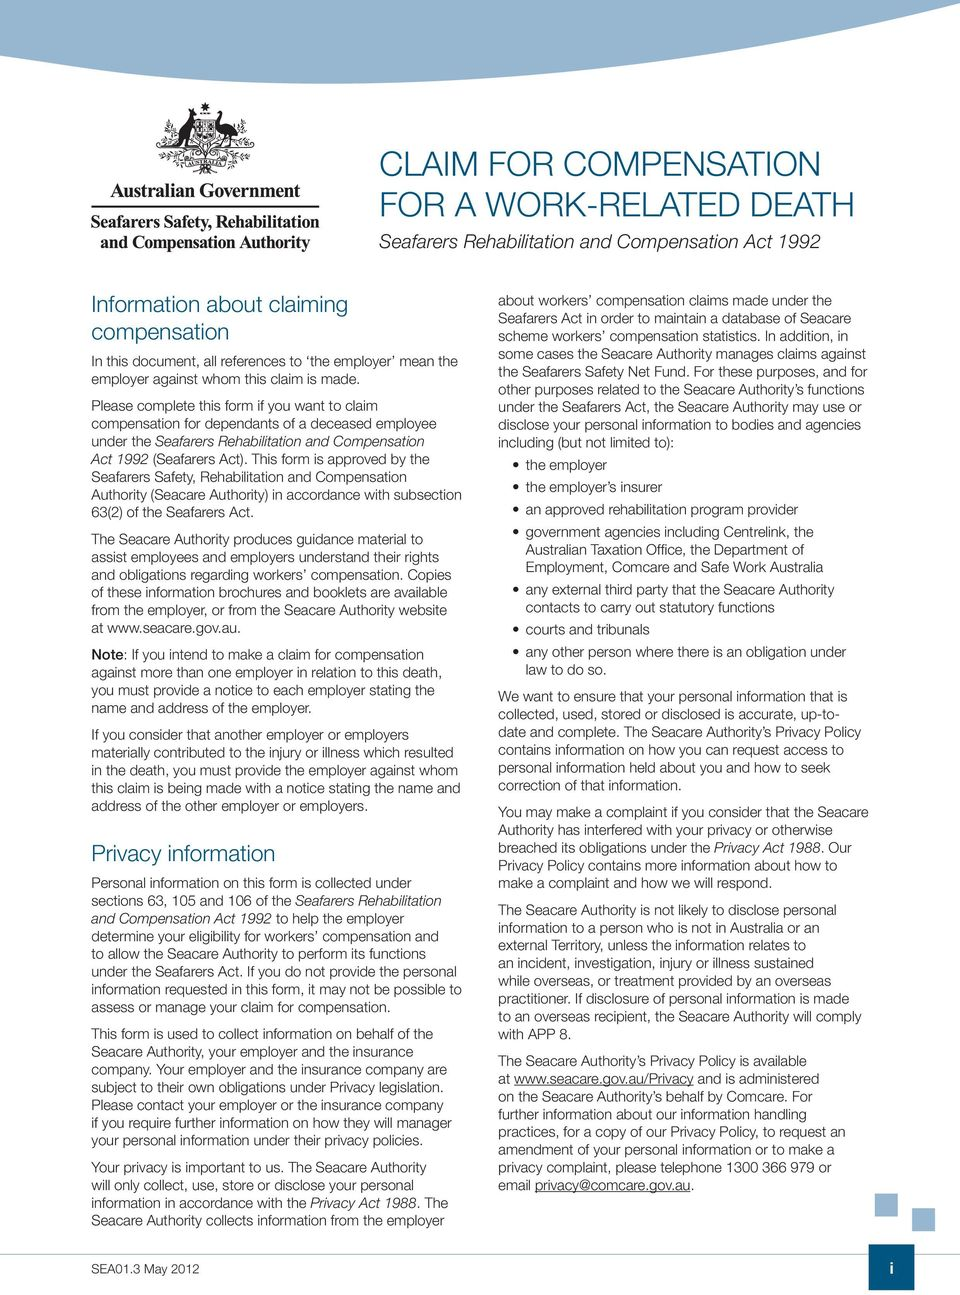 Please complete this form if you want to claim compensation for dependants of a deceased employee under the Seafarers Rehabilitation and Compensation Act 1992 (Seafarers Act).